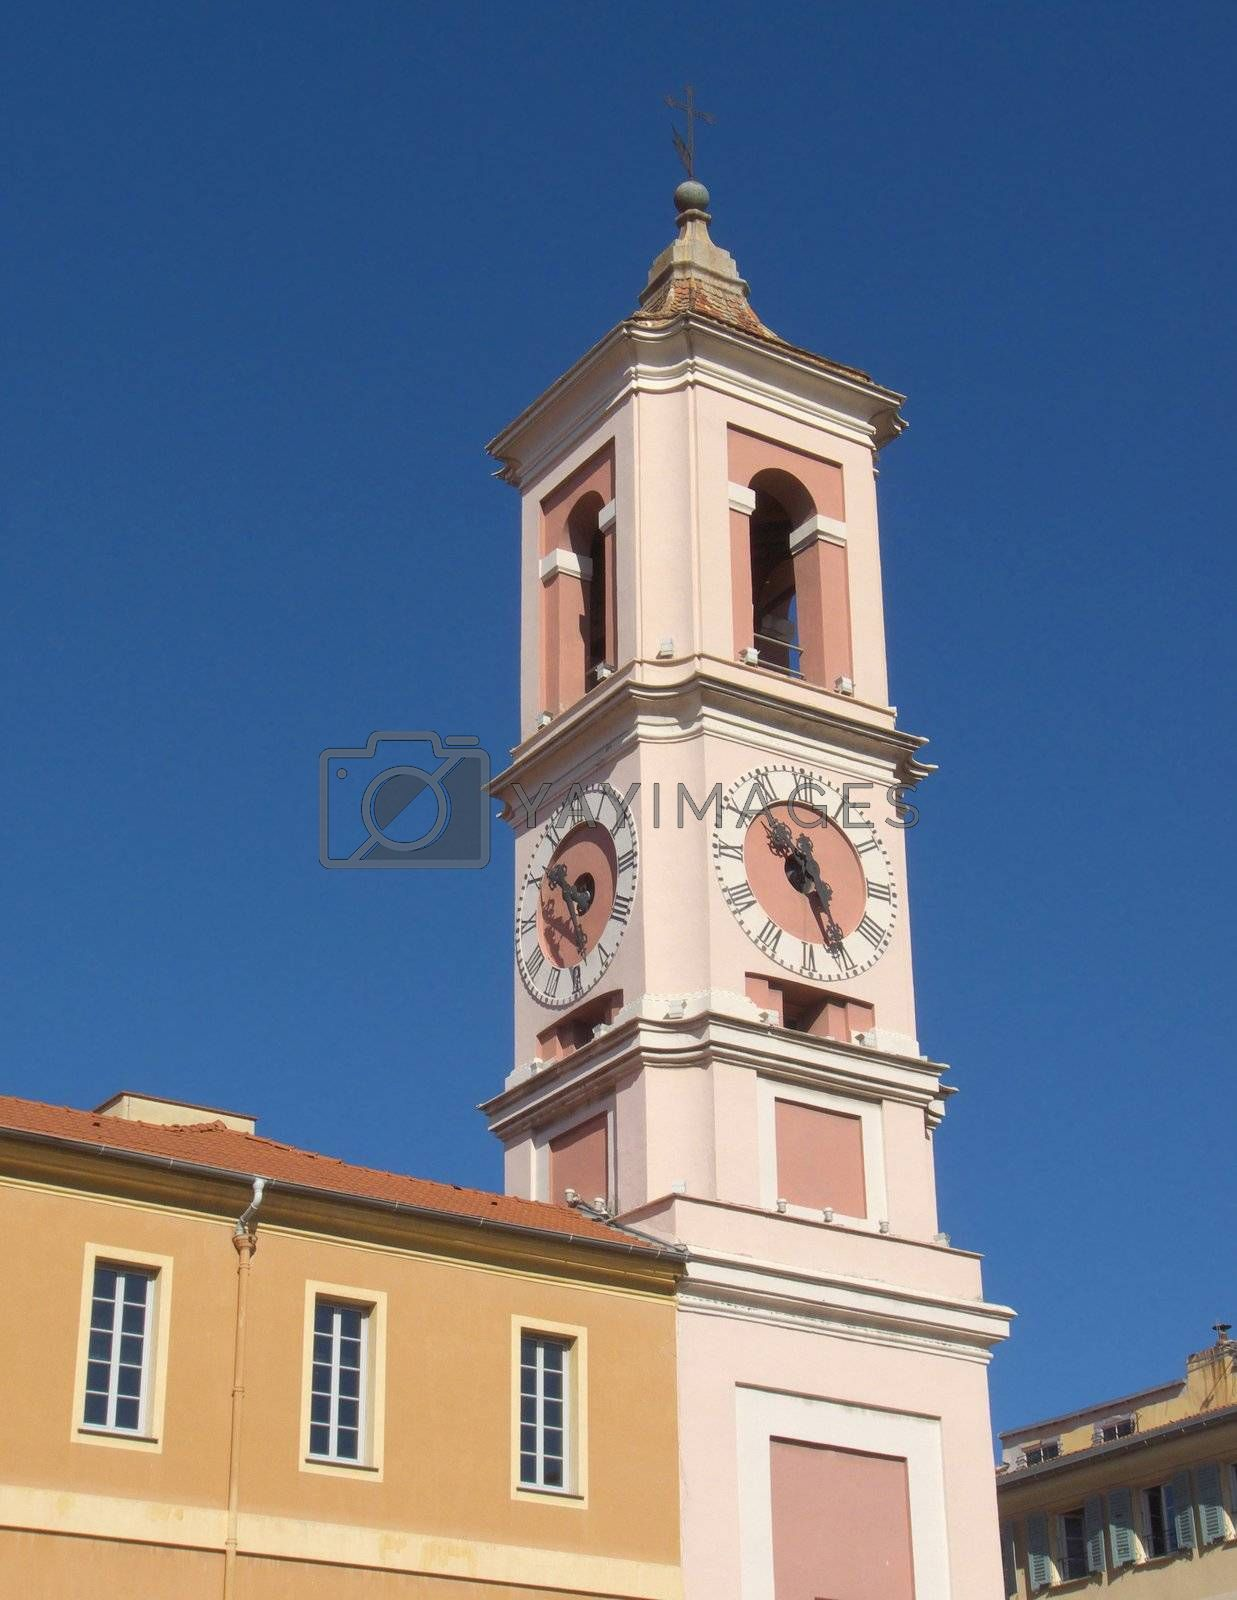 Clock Tower of the Rusca Palace in Nice city